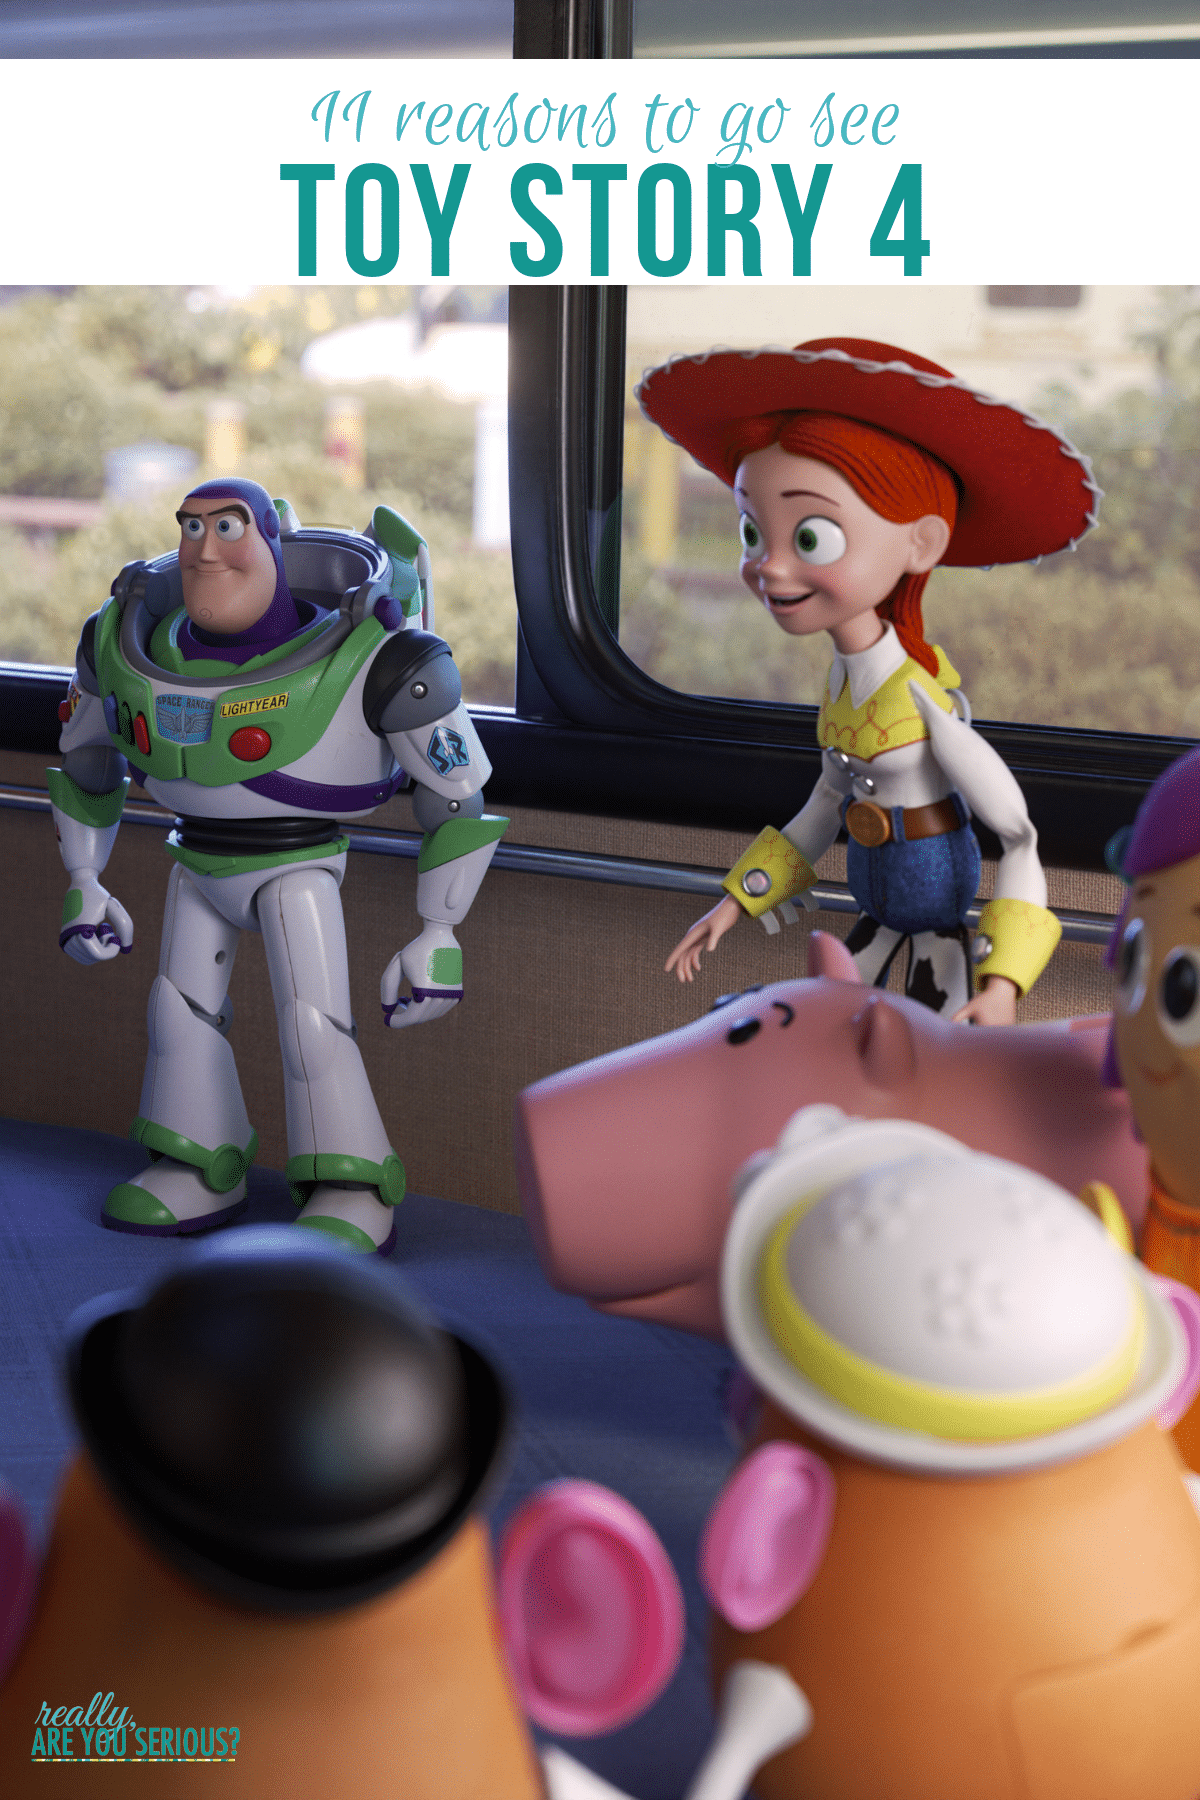 11 reasons to go see Toy Story 4